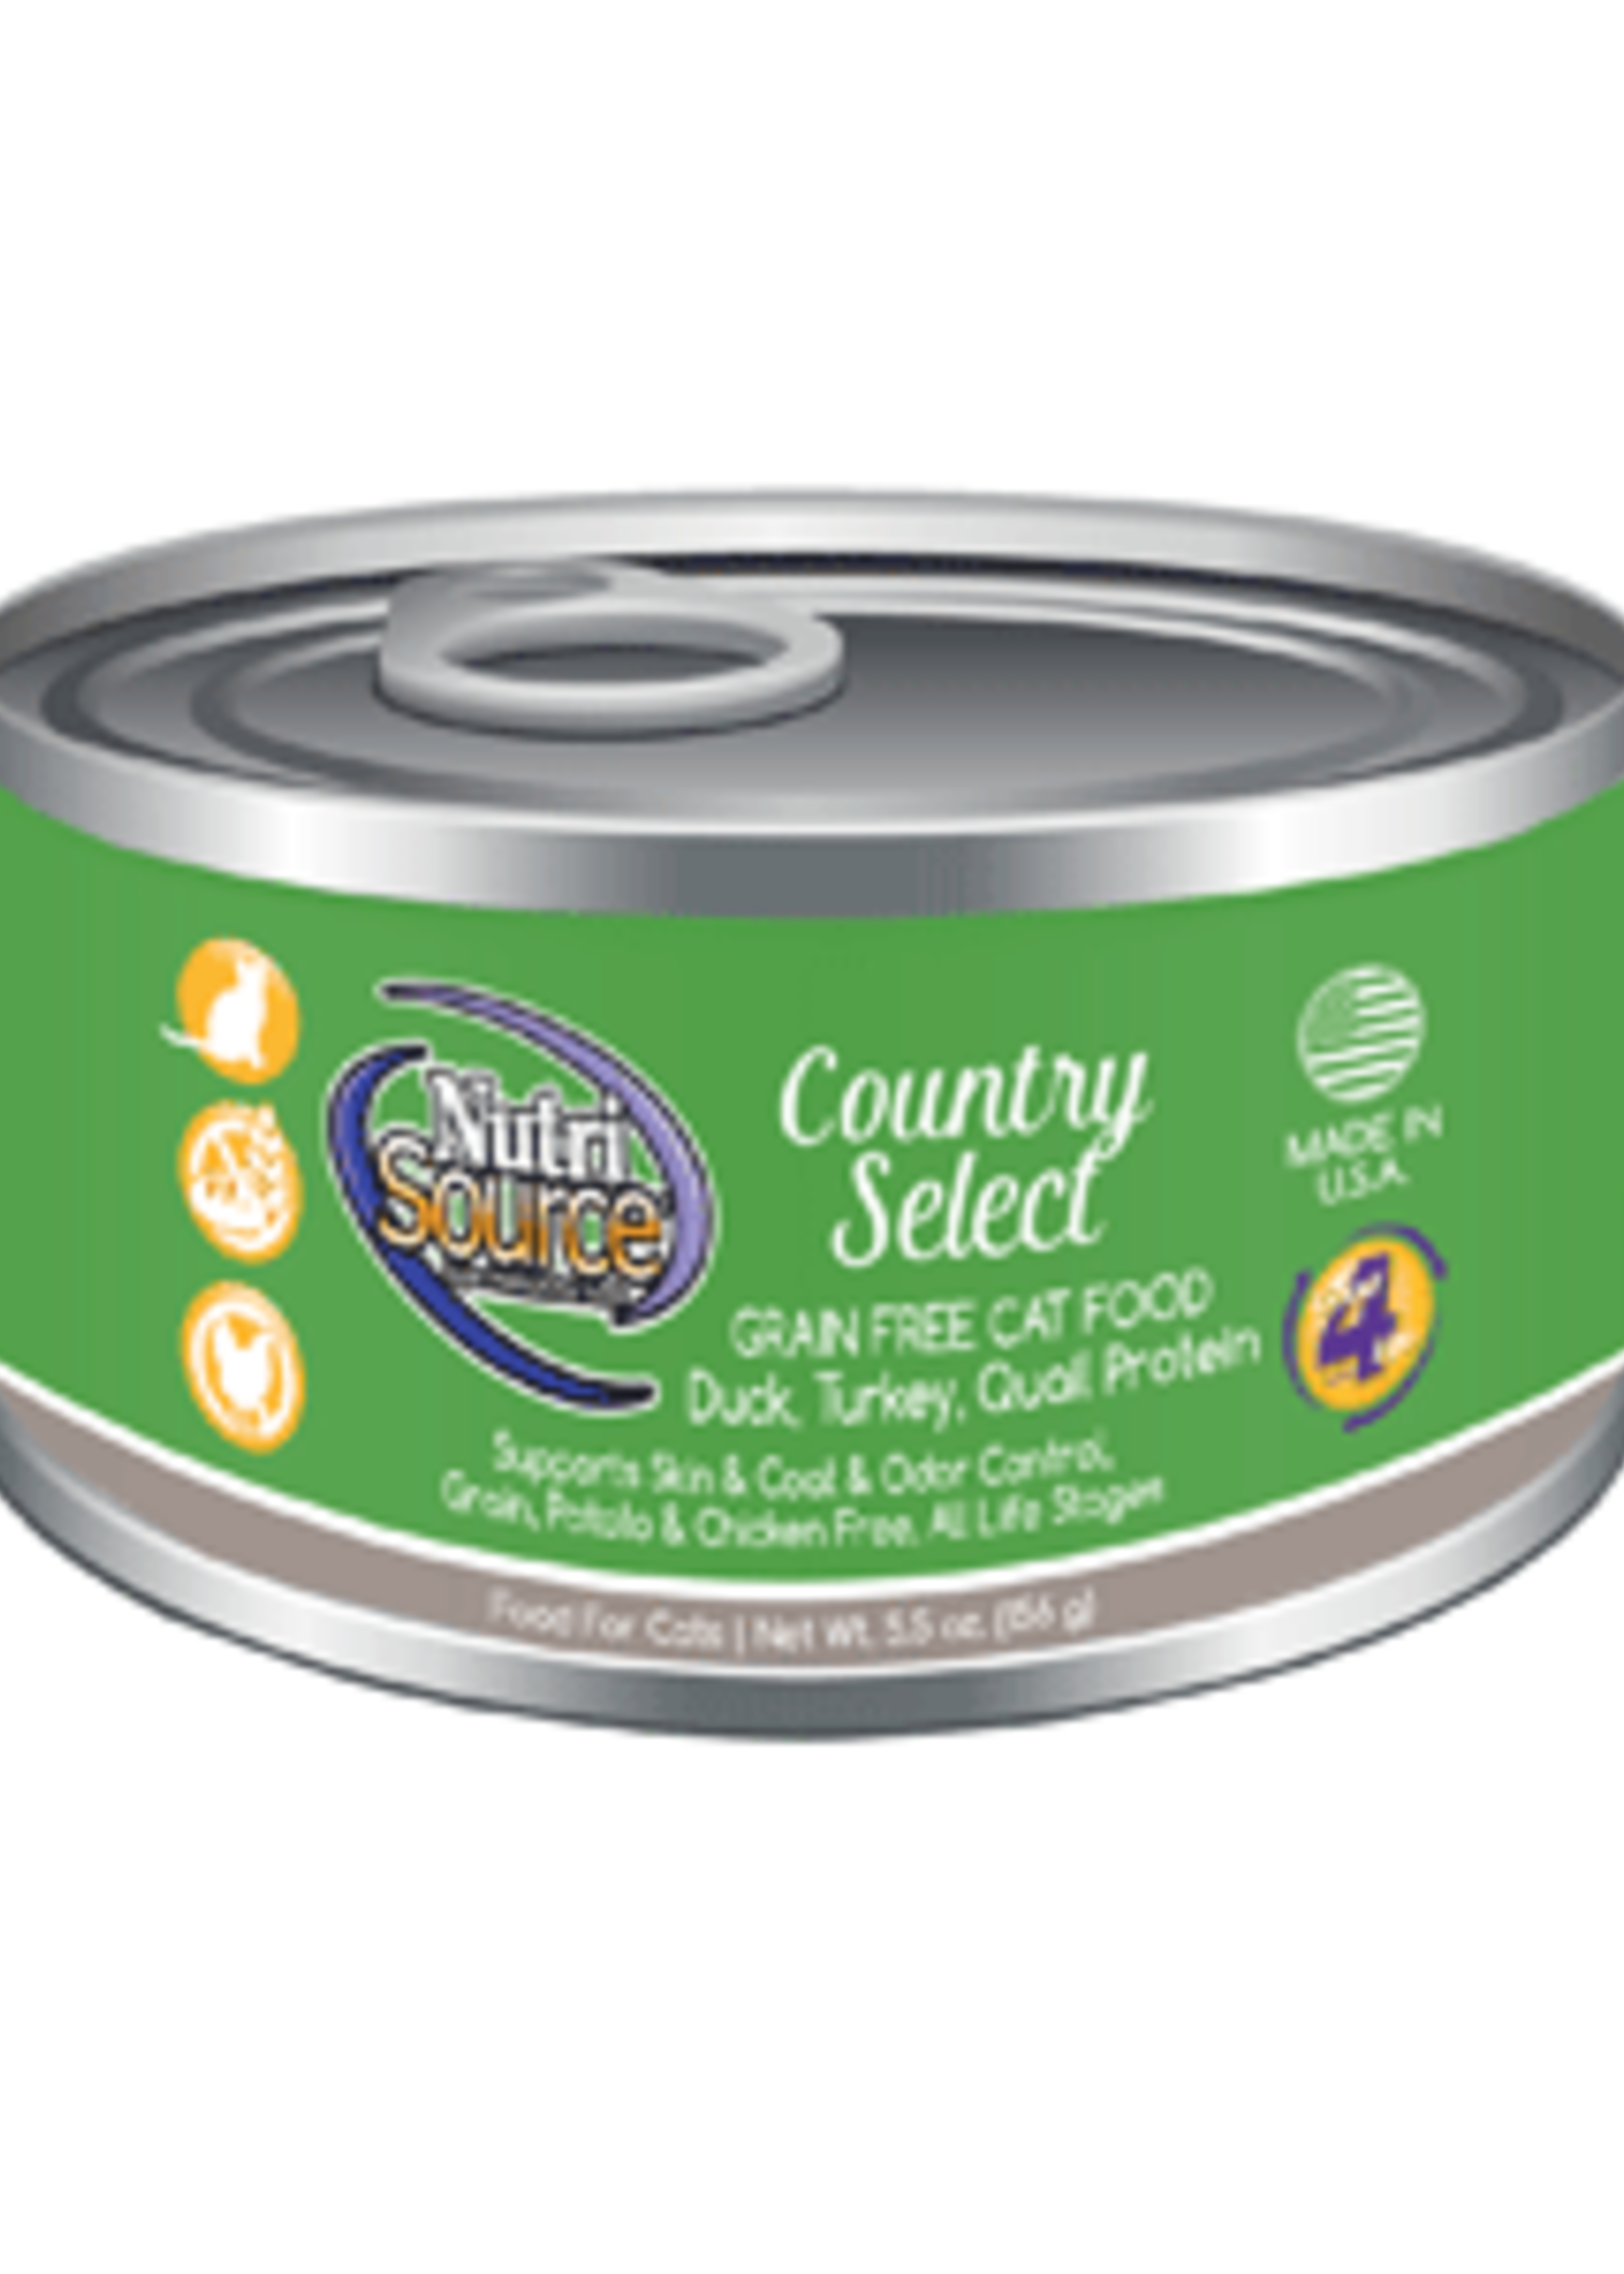 Nutrisource NutriSource Grain-Free Country Select Wet Cat Food 5.5oz